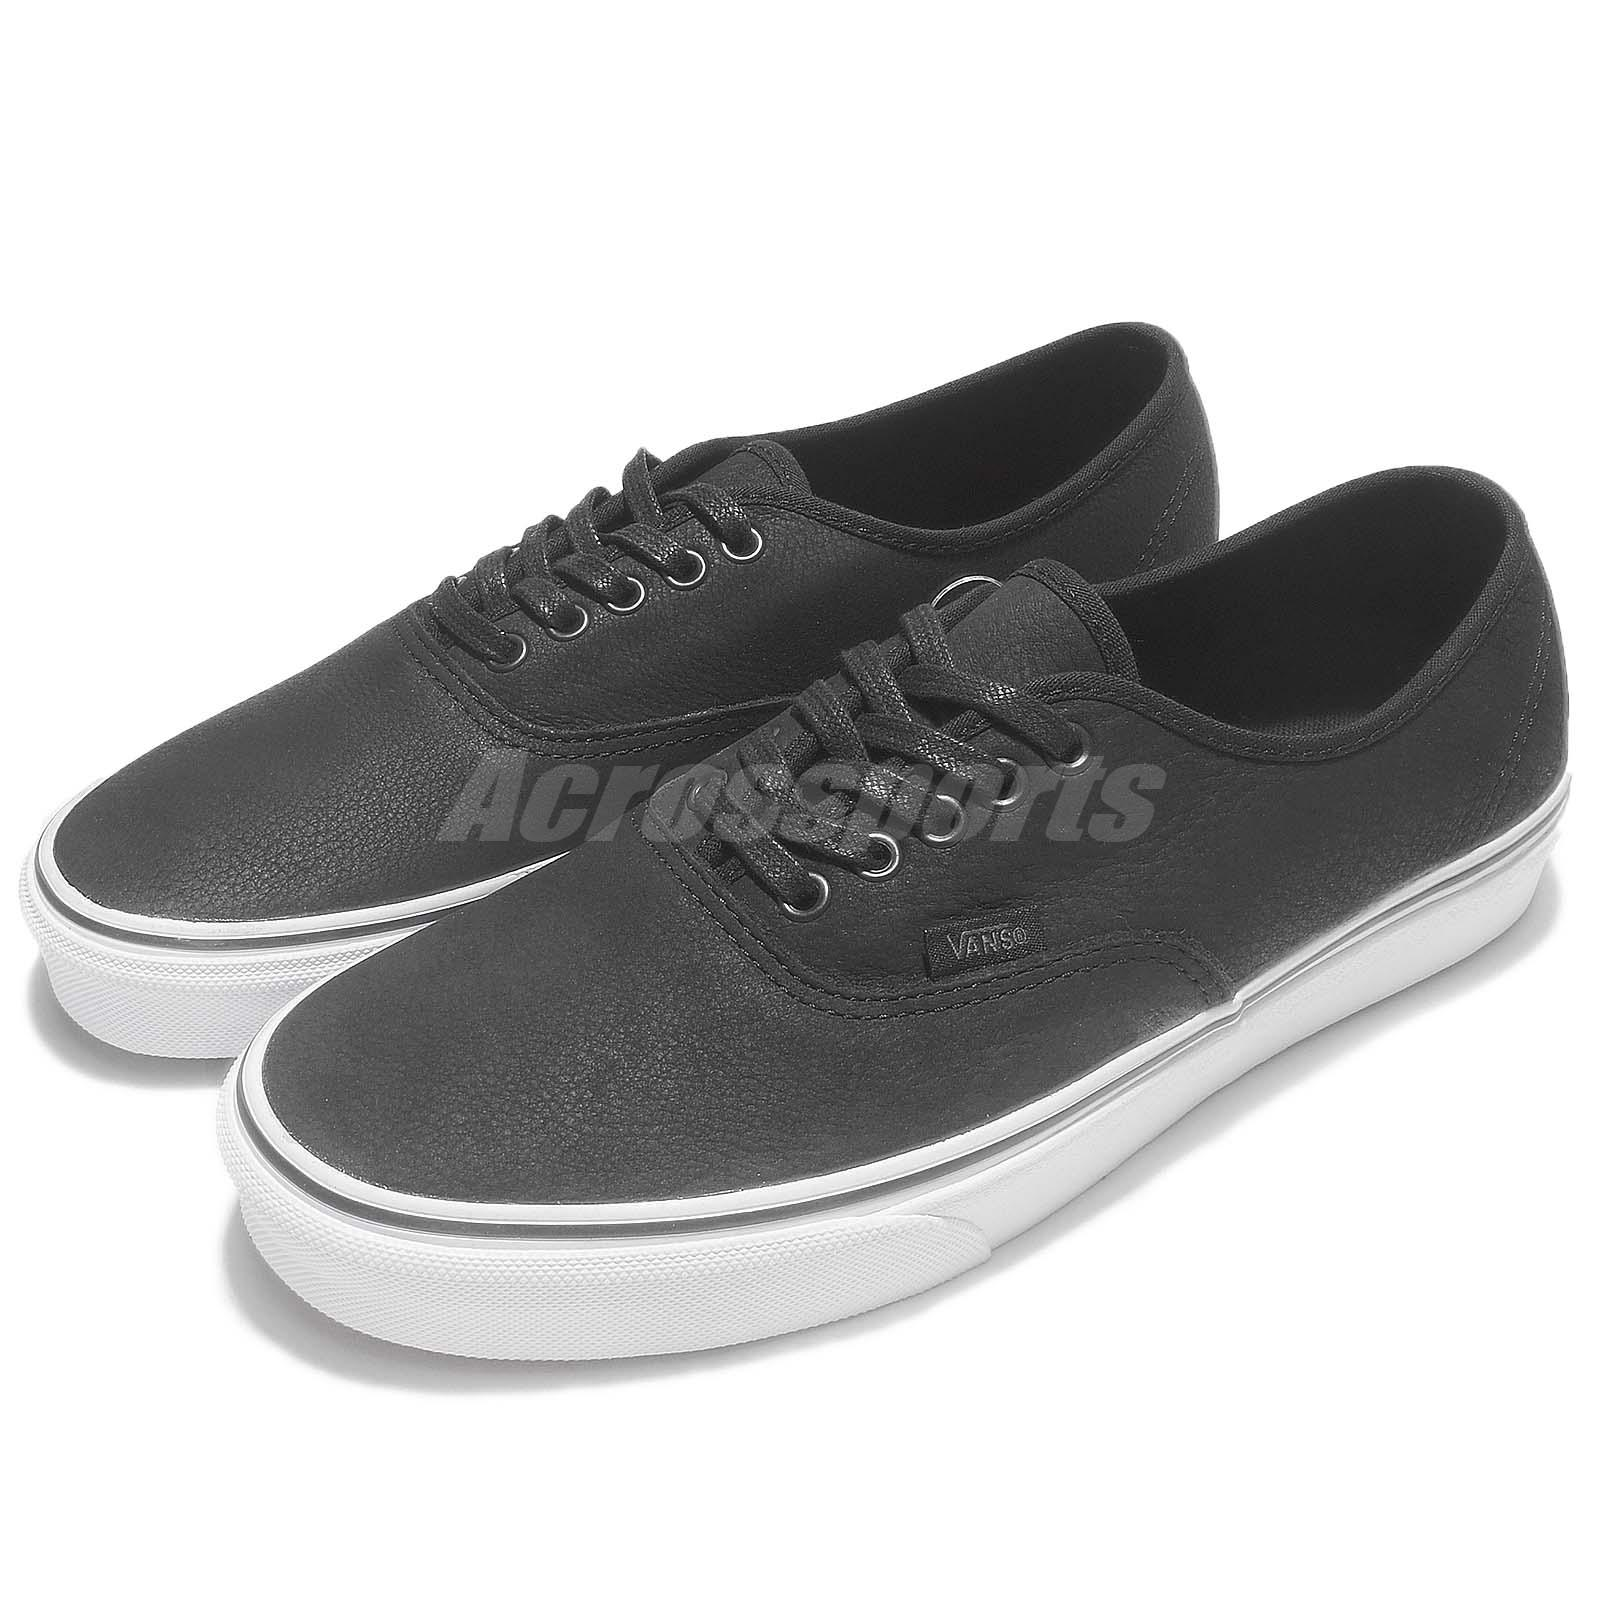 1c600861c5 Details about Vans Authentic Premium Leather Black White Men Skate Boarding  Shoes 63010133